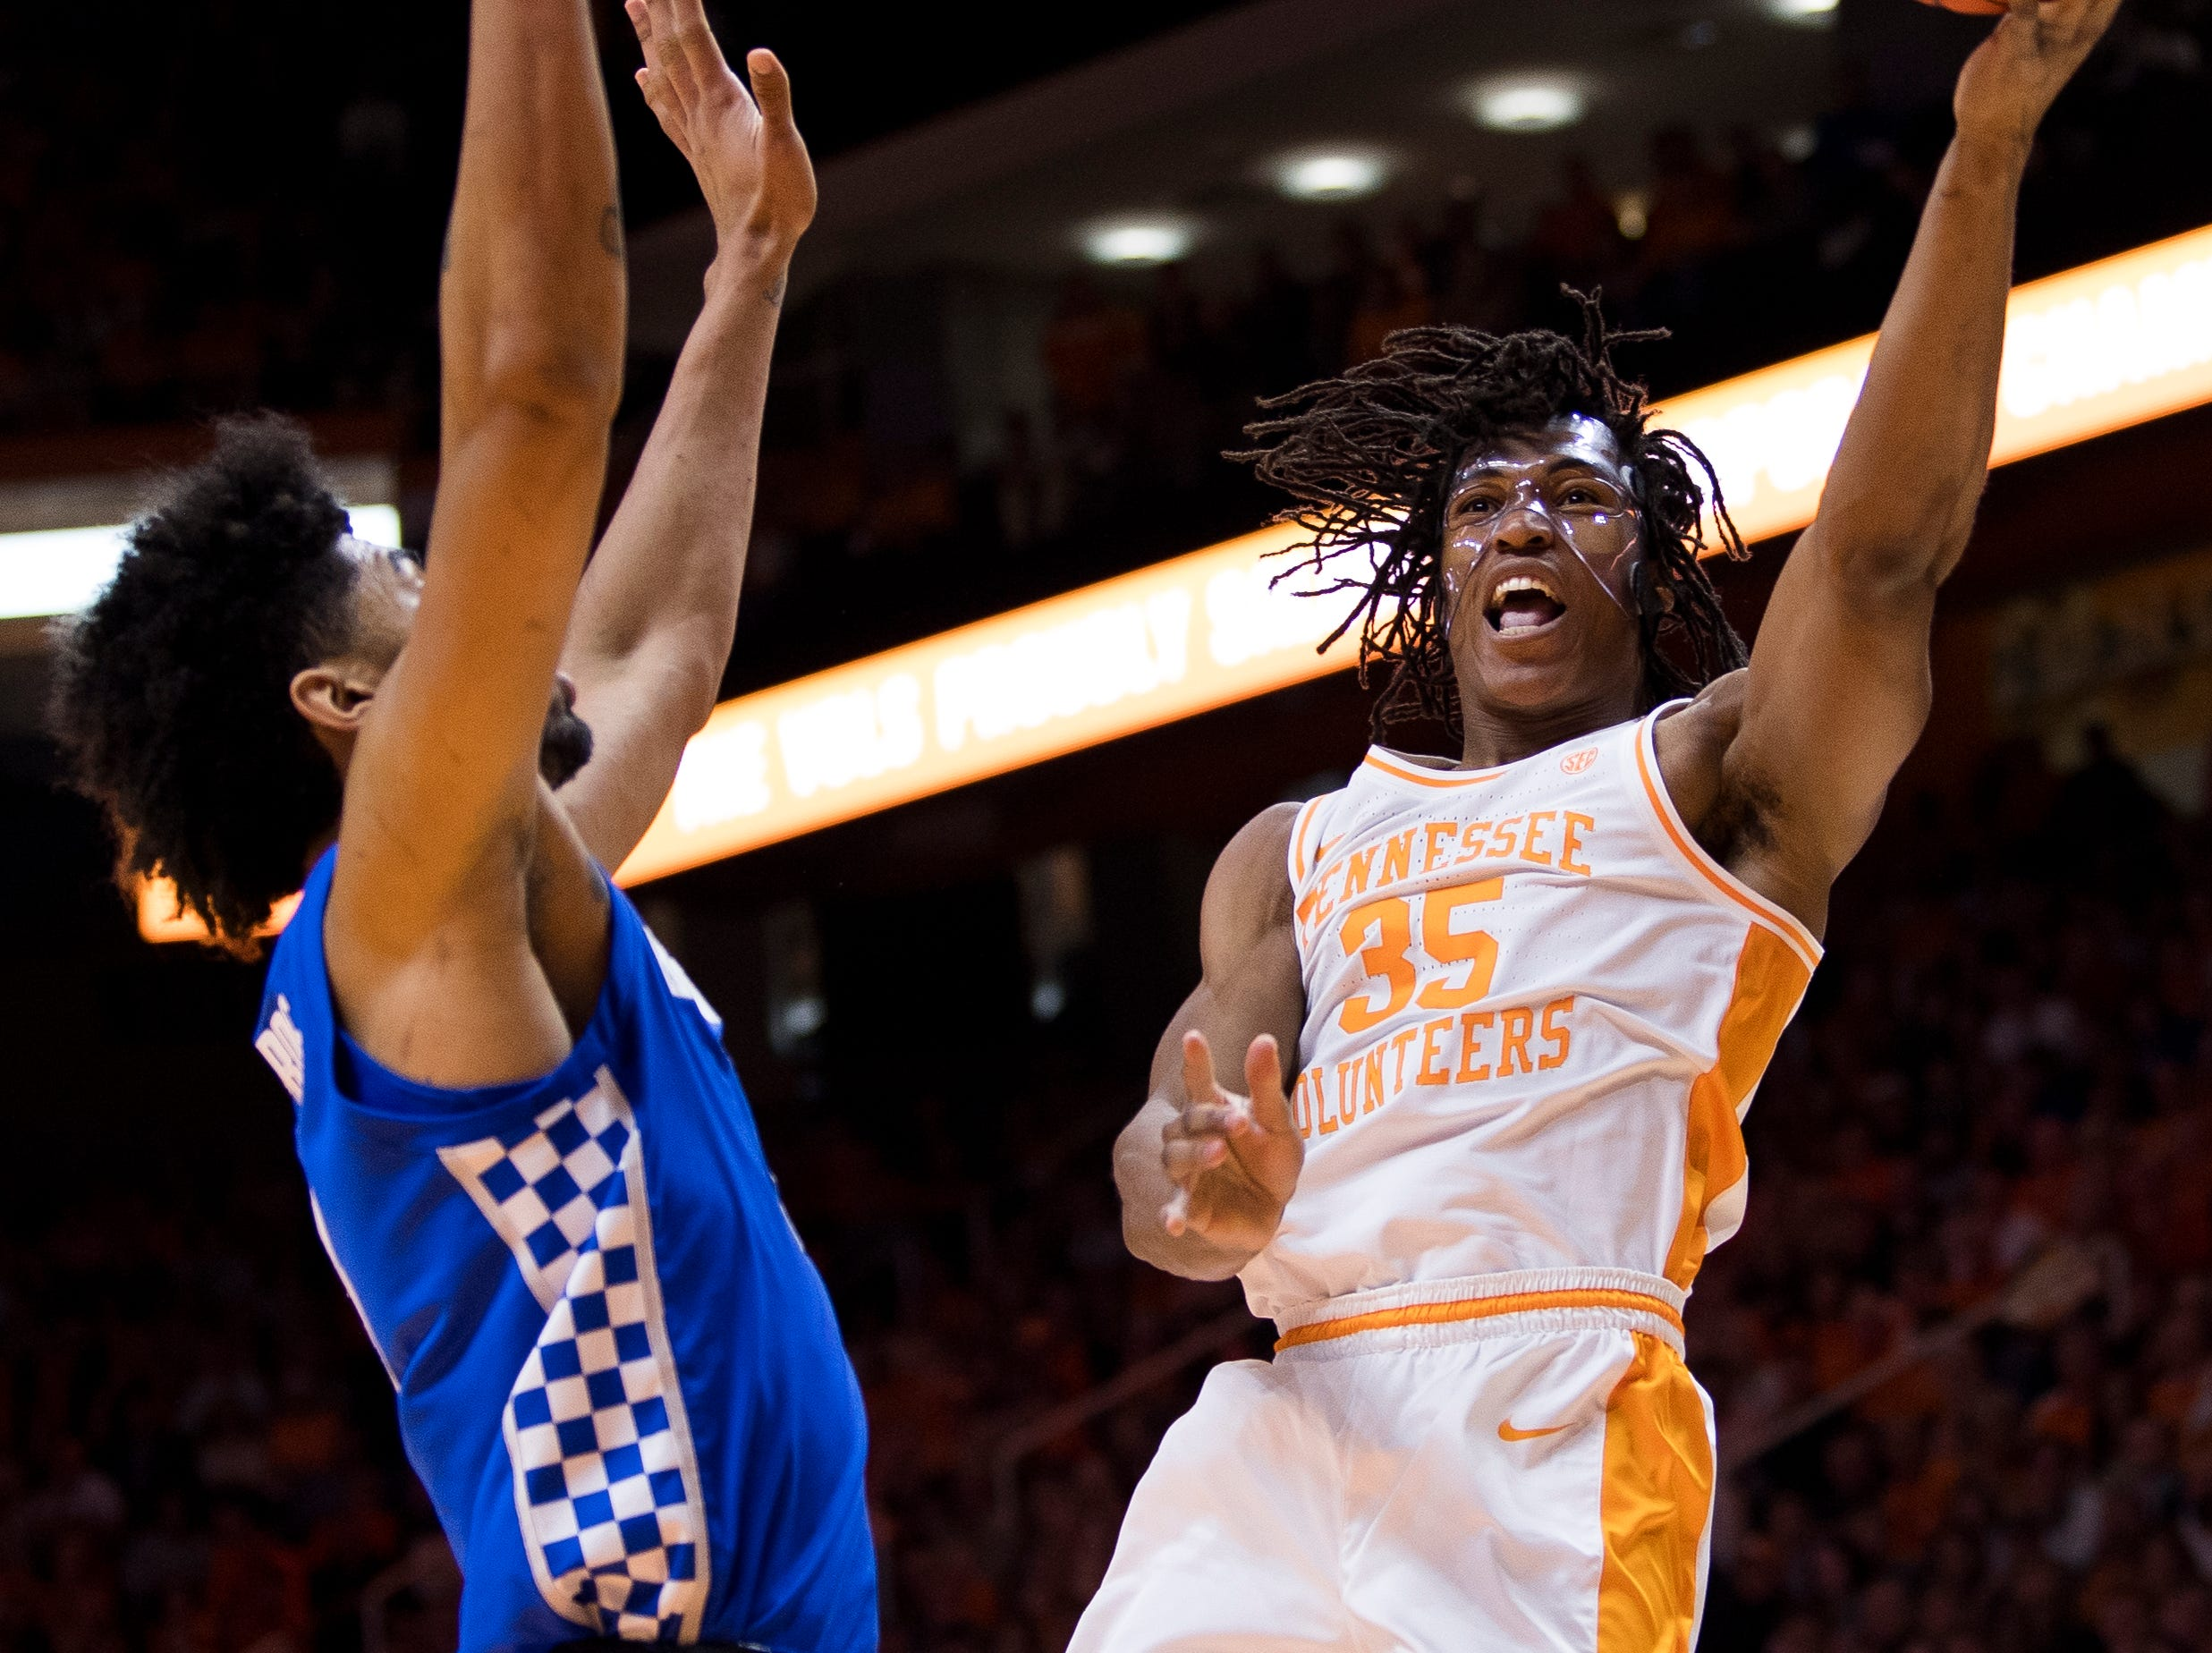 Tennessee guard/forward Yves Pons (35) attempts a shot during Tennessee's home basketball game against Kentucky at Thompson-Boling Arena in Knoxville on Saturday, March 2, 2019.